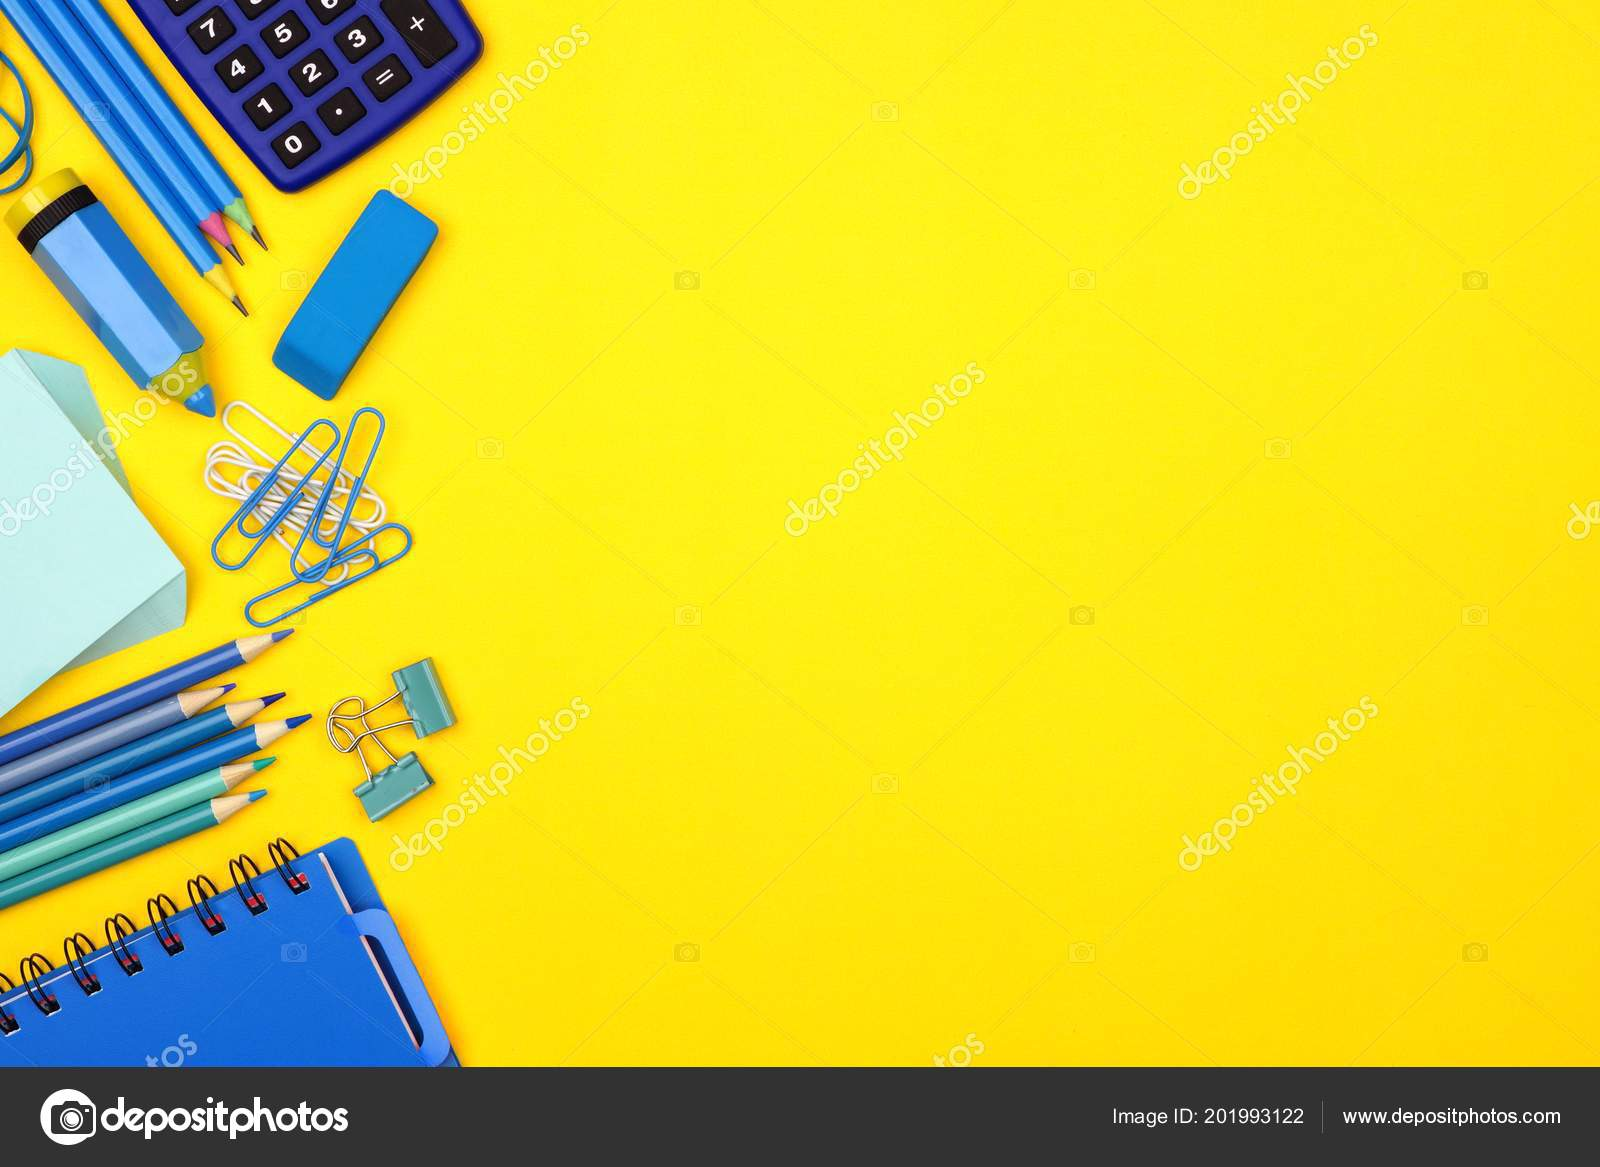 blue school supplies side border bright yellow paper background